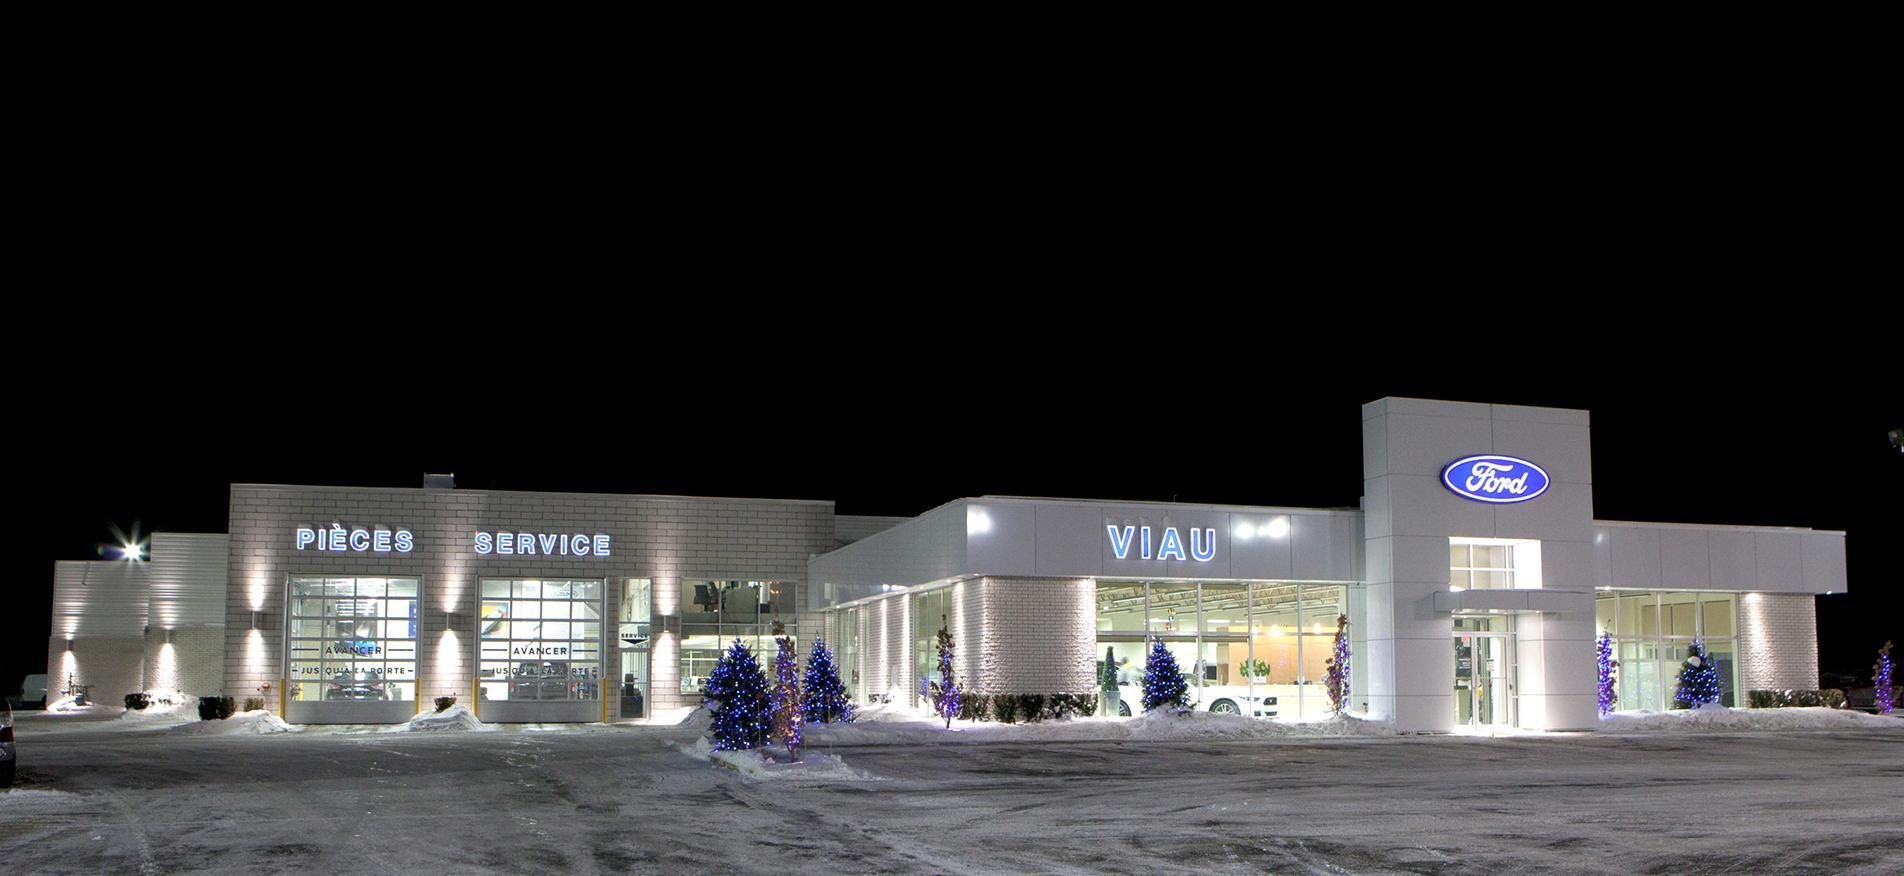 Viau Ford dealership